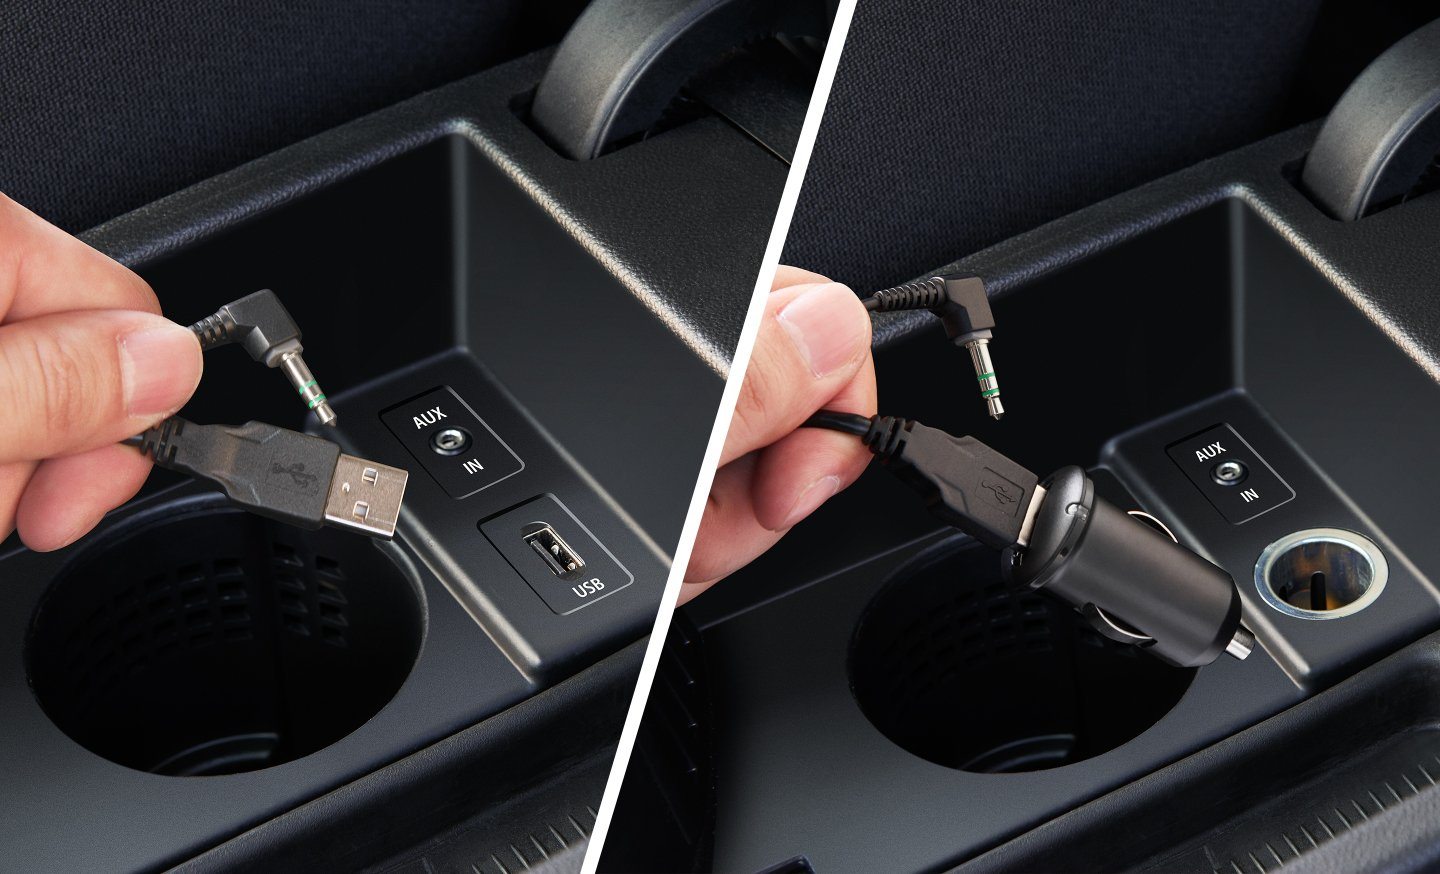 Bring your car stereo and smartphone together with this Bluetooth